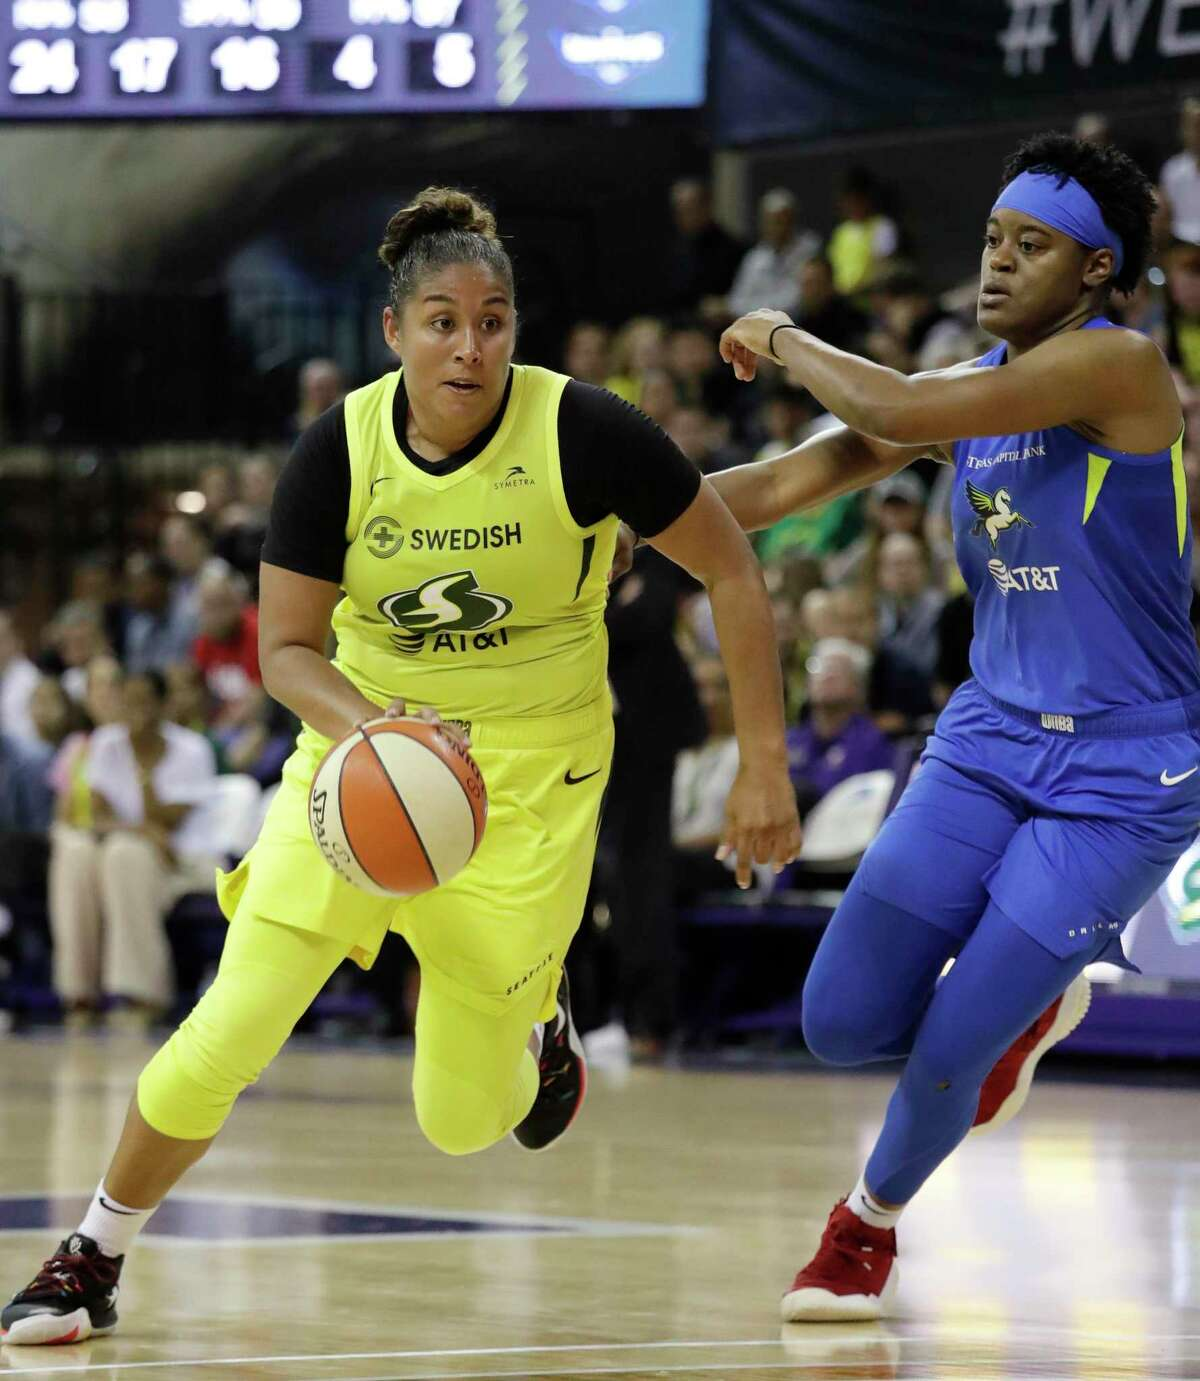 Seattle Storm's Kaleena Mosqueda-Lewis, left, drives past Dallas Wings' Kaela Davis during the second half of a WNBA basketball game Friday, July 12, 2019, in Seattle. Mosqueda-Lewis led the Storm with 18 points in their 95-81 victory.